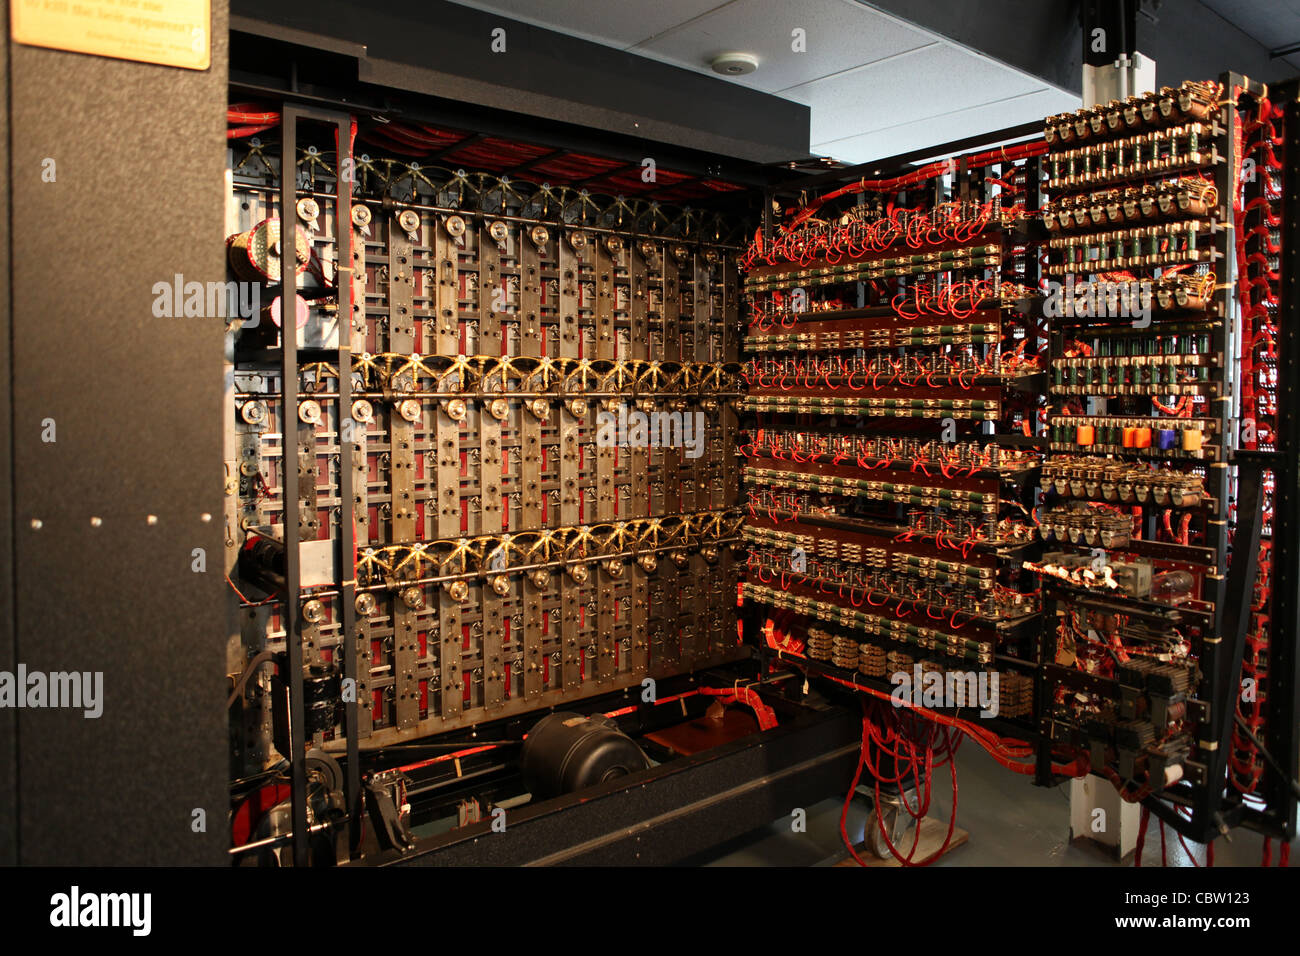 the turing bombe  re-build project in bletchley park  uk stock photo  41731595